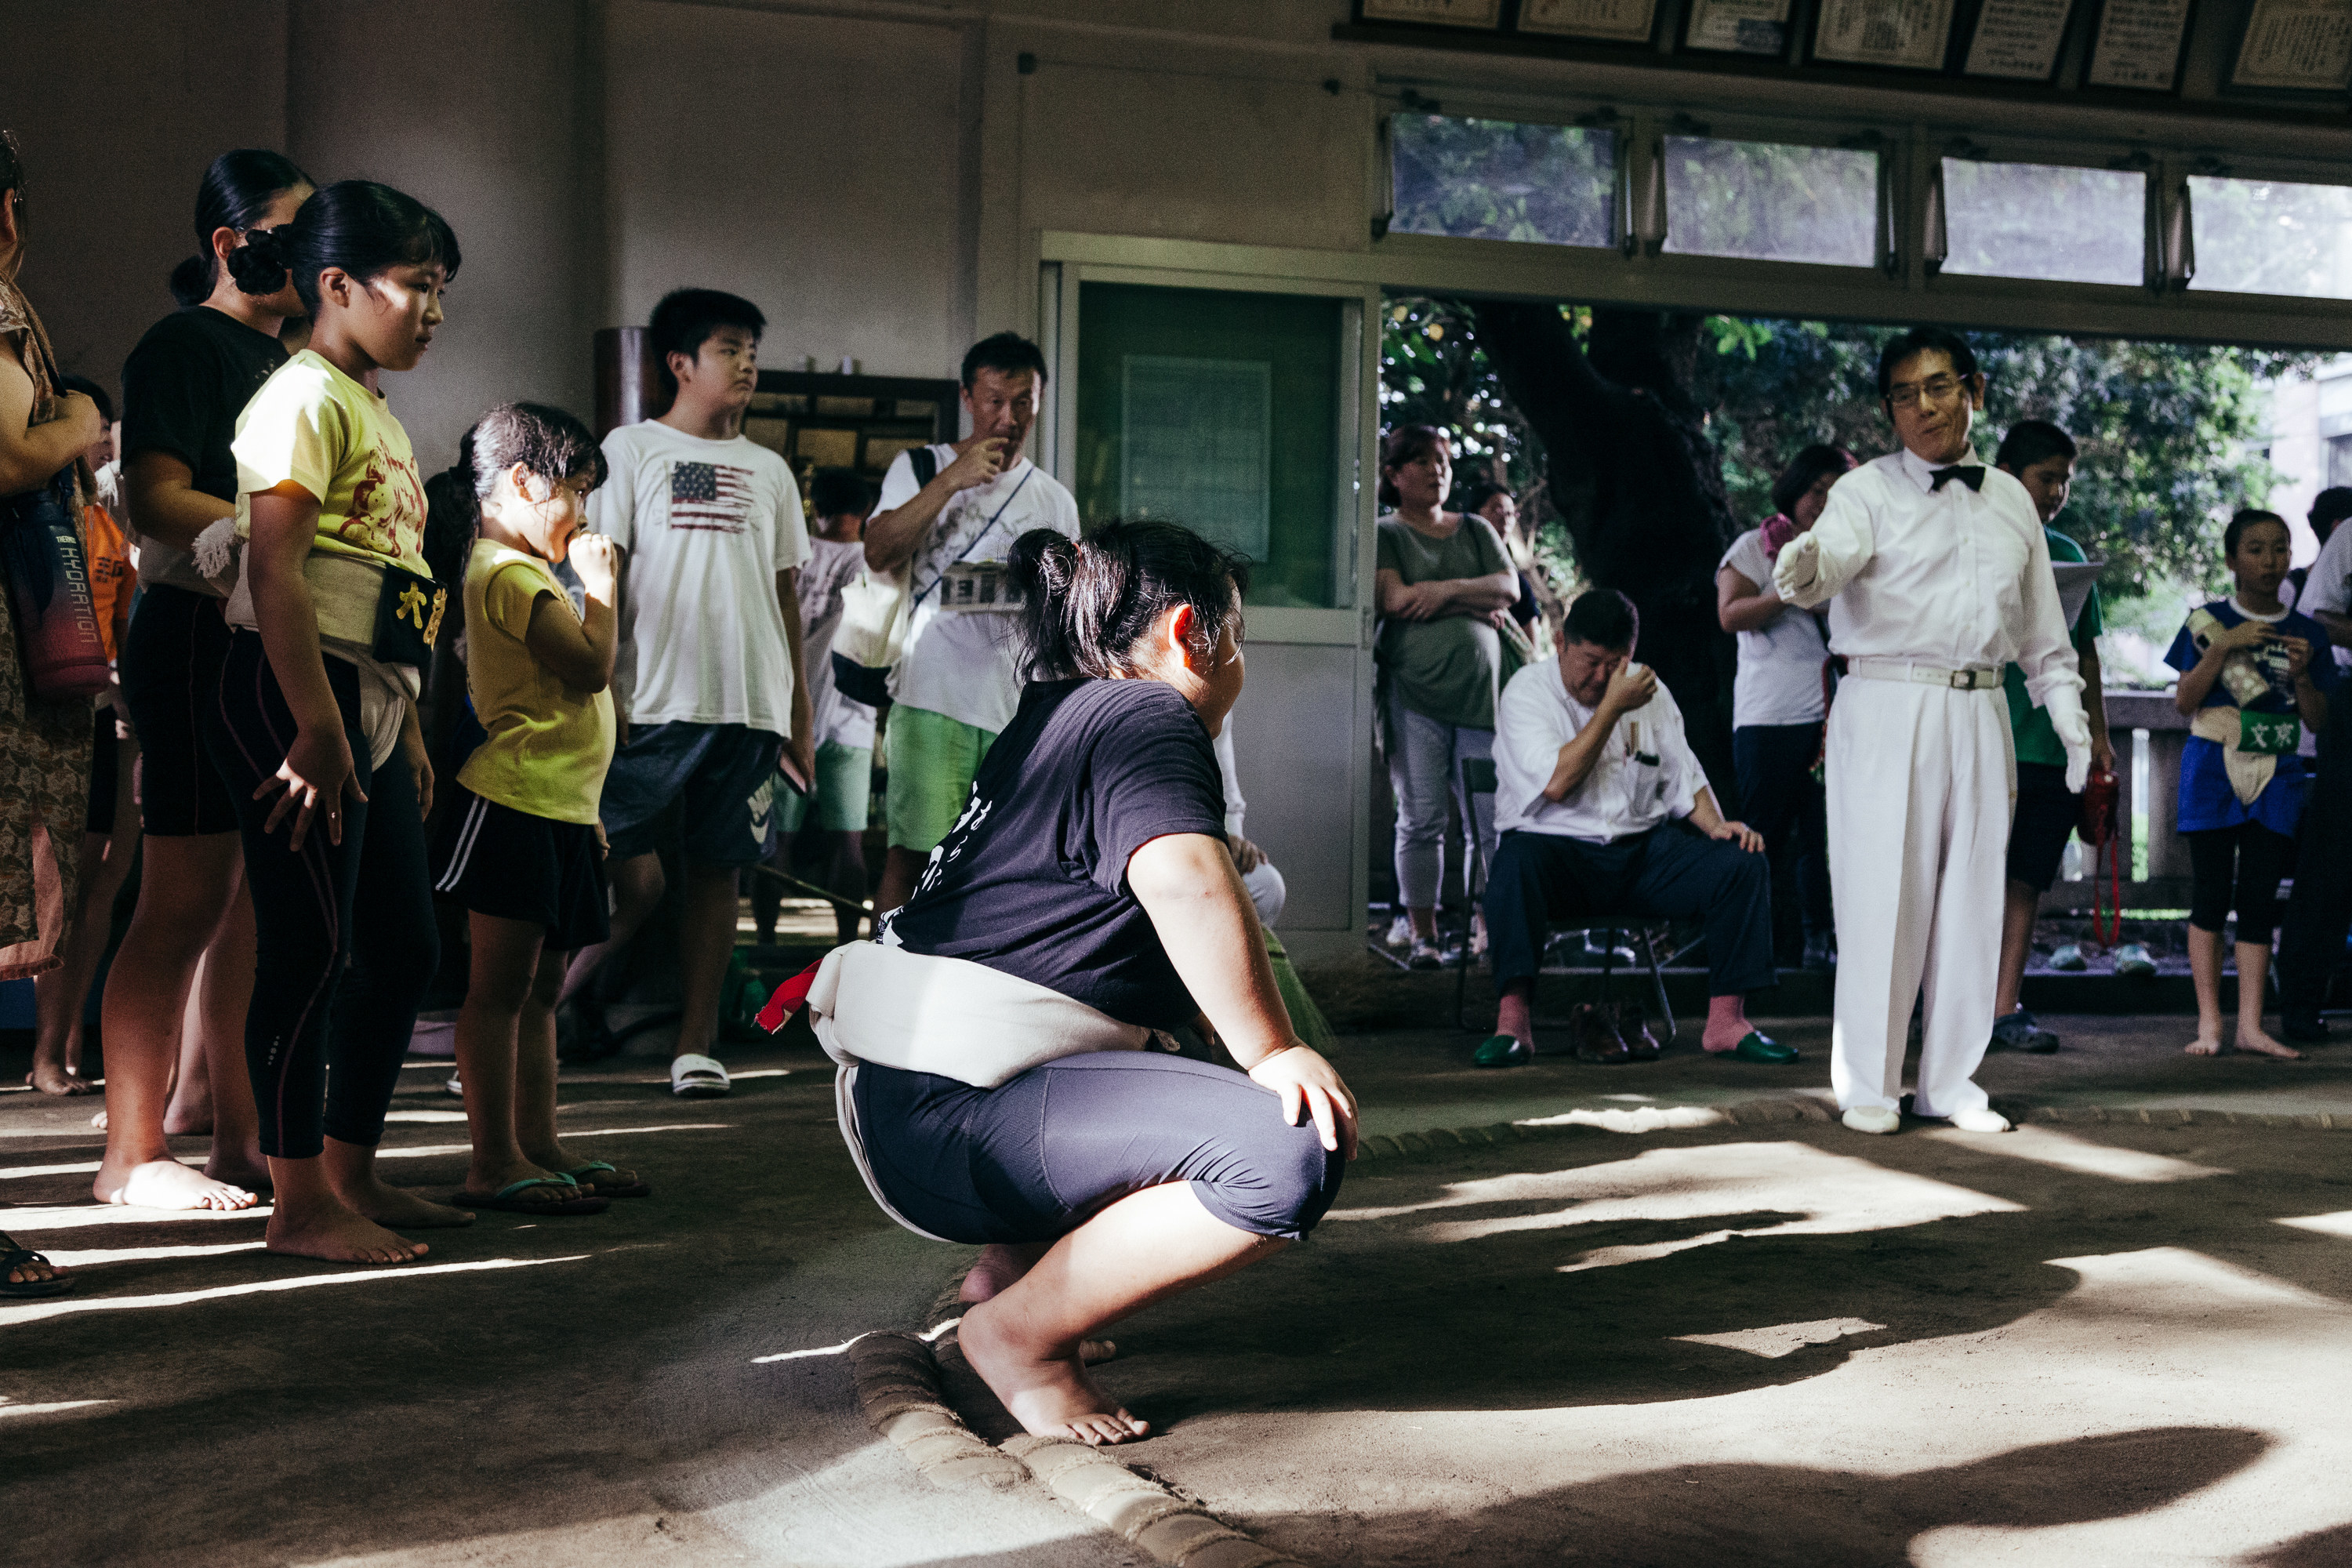 A girl crouches at the end of a sumo ring in front of a crowd